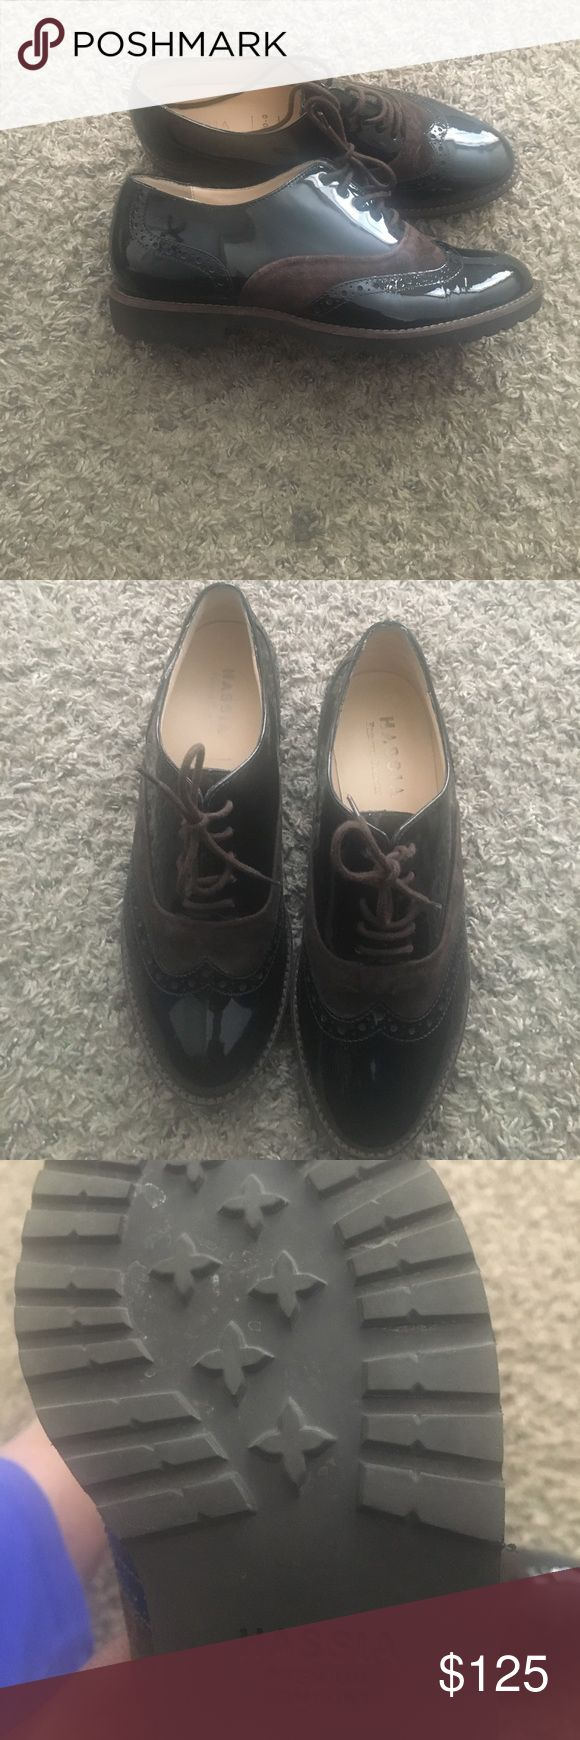 HASSIA Black and Brown Loafers Gorgeous, excellent, condition  shoes! Hassia Shoes Flats & Loafers